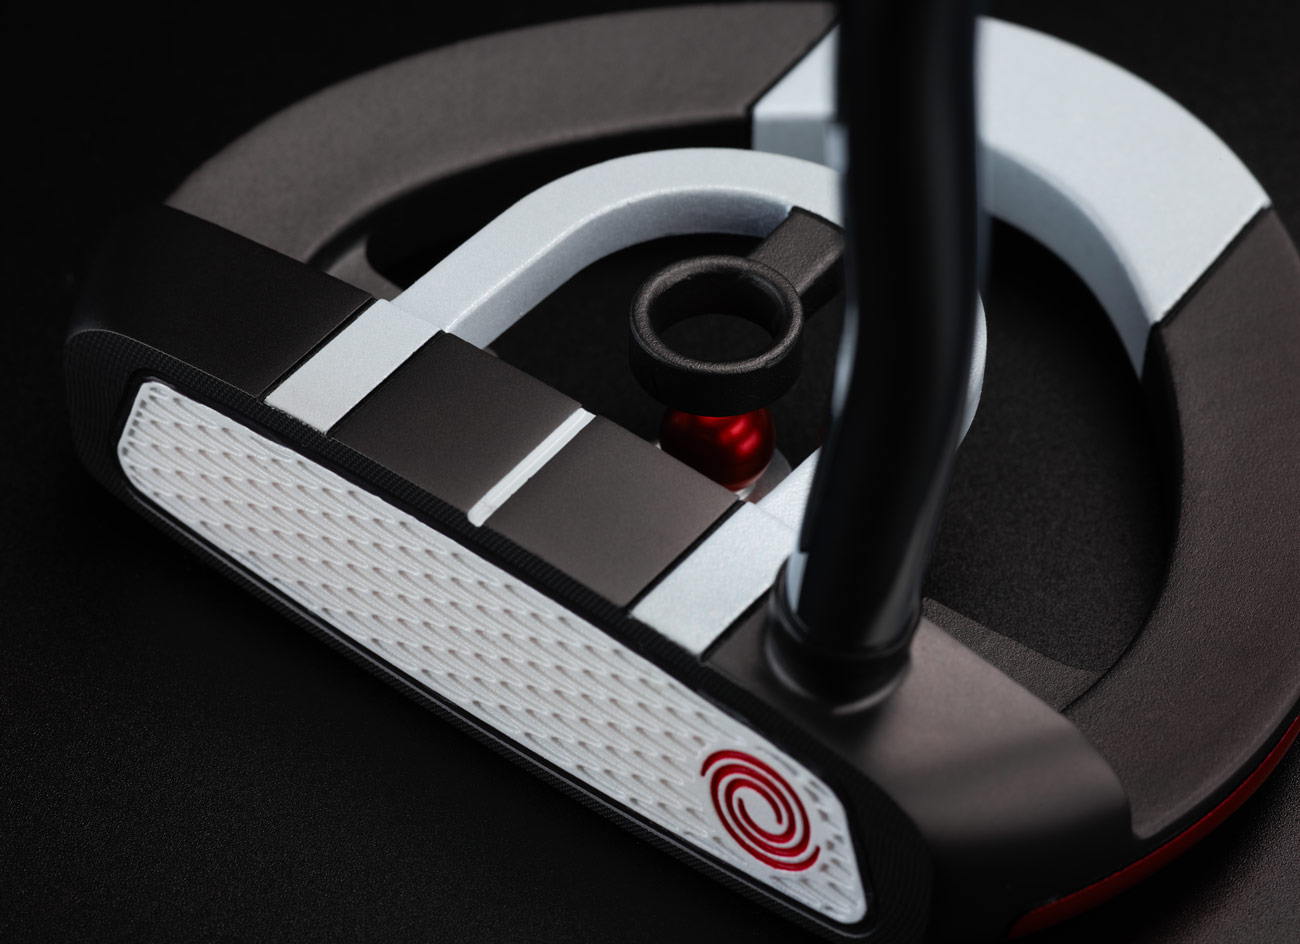 Odyssey unveils Red Ball putter with 'scope' to improve alignment